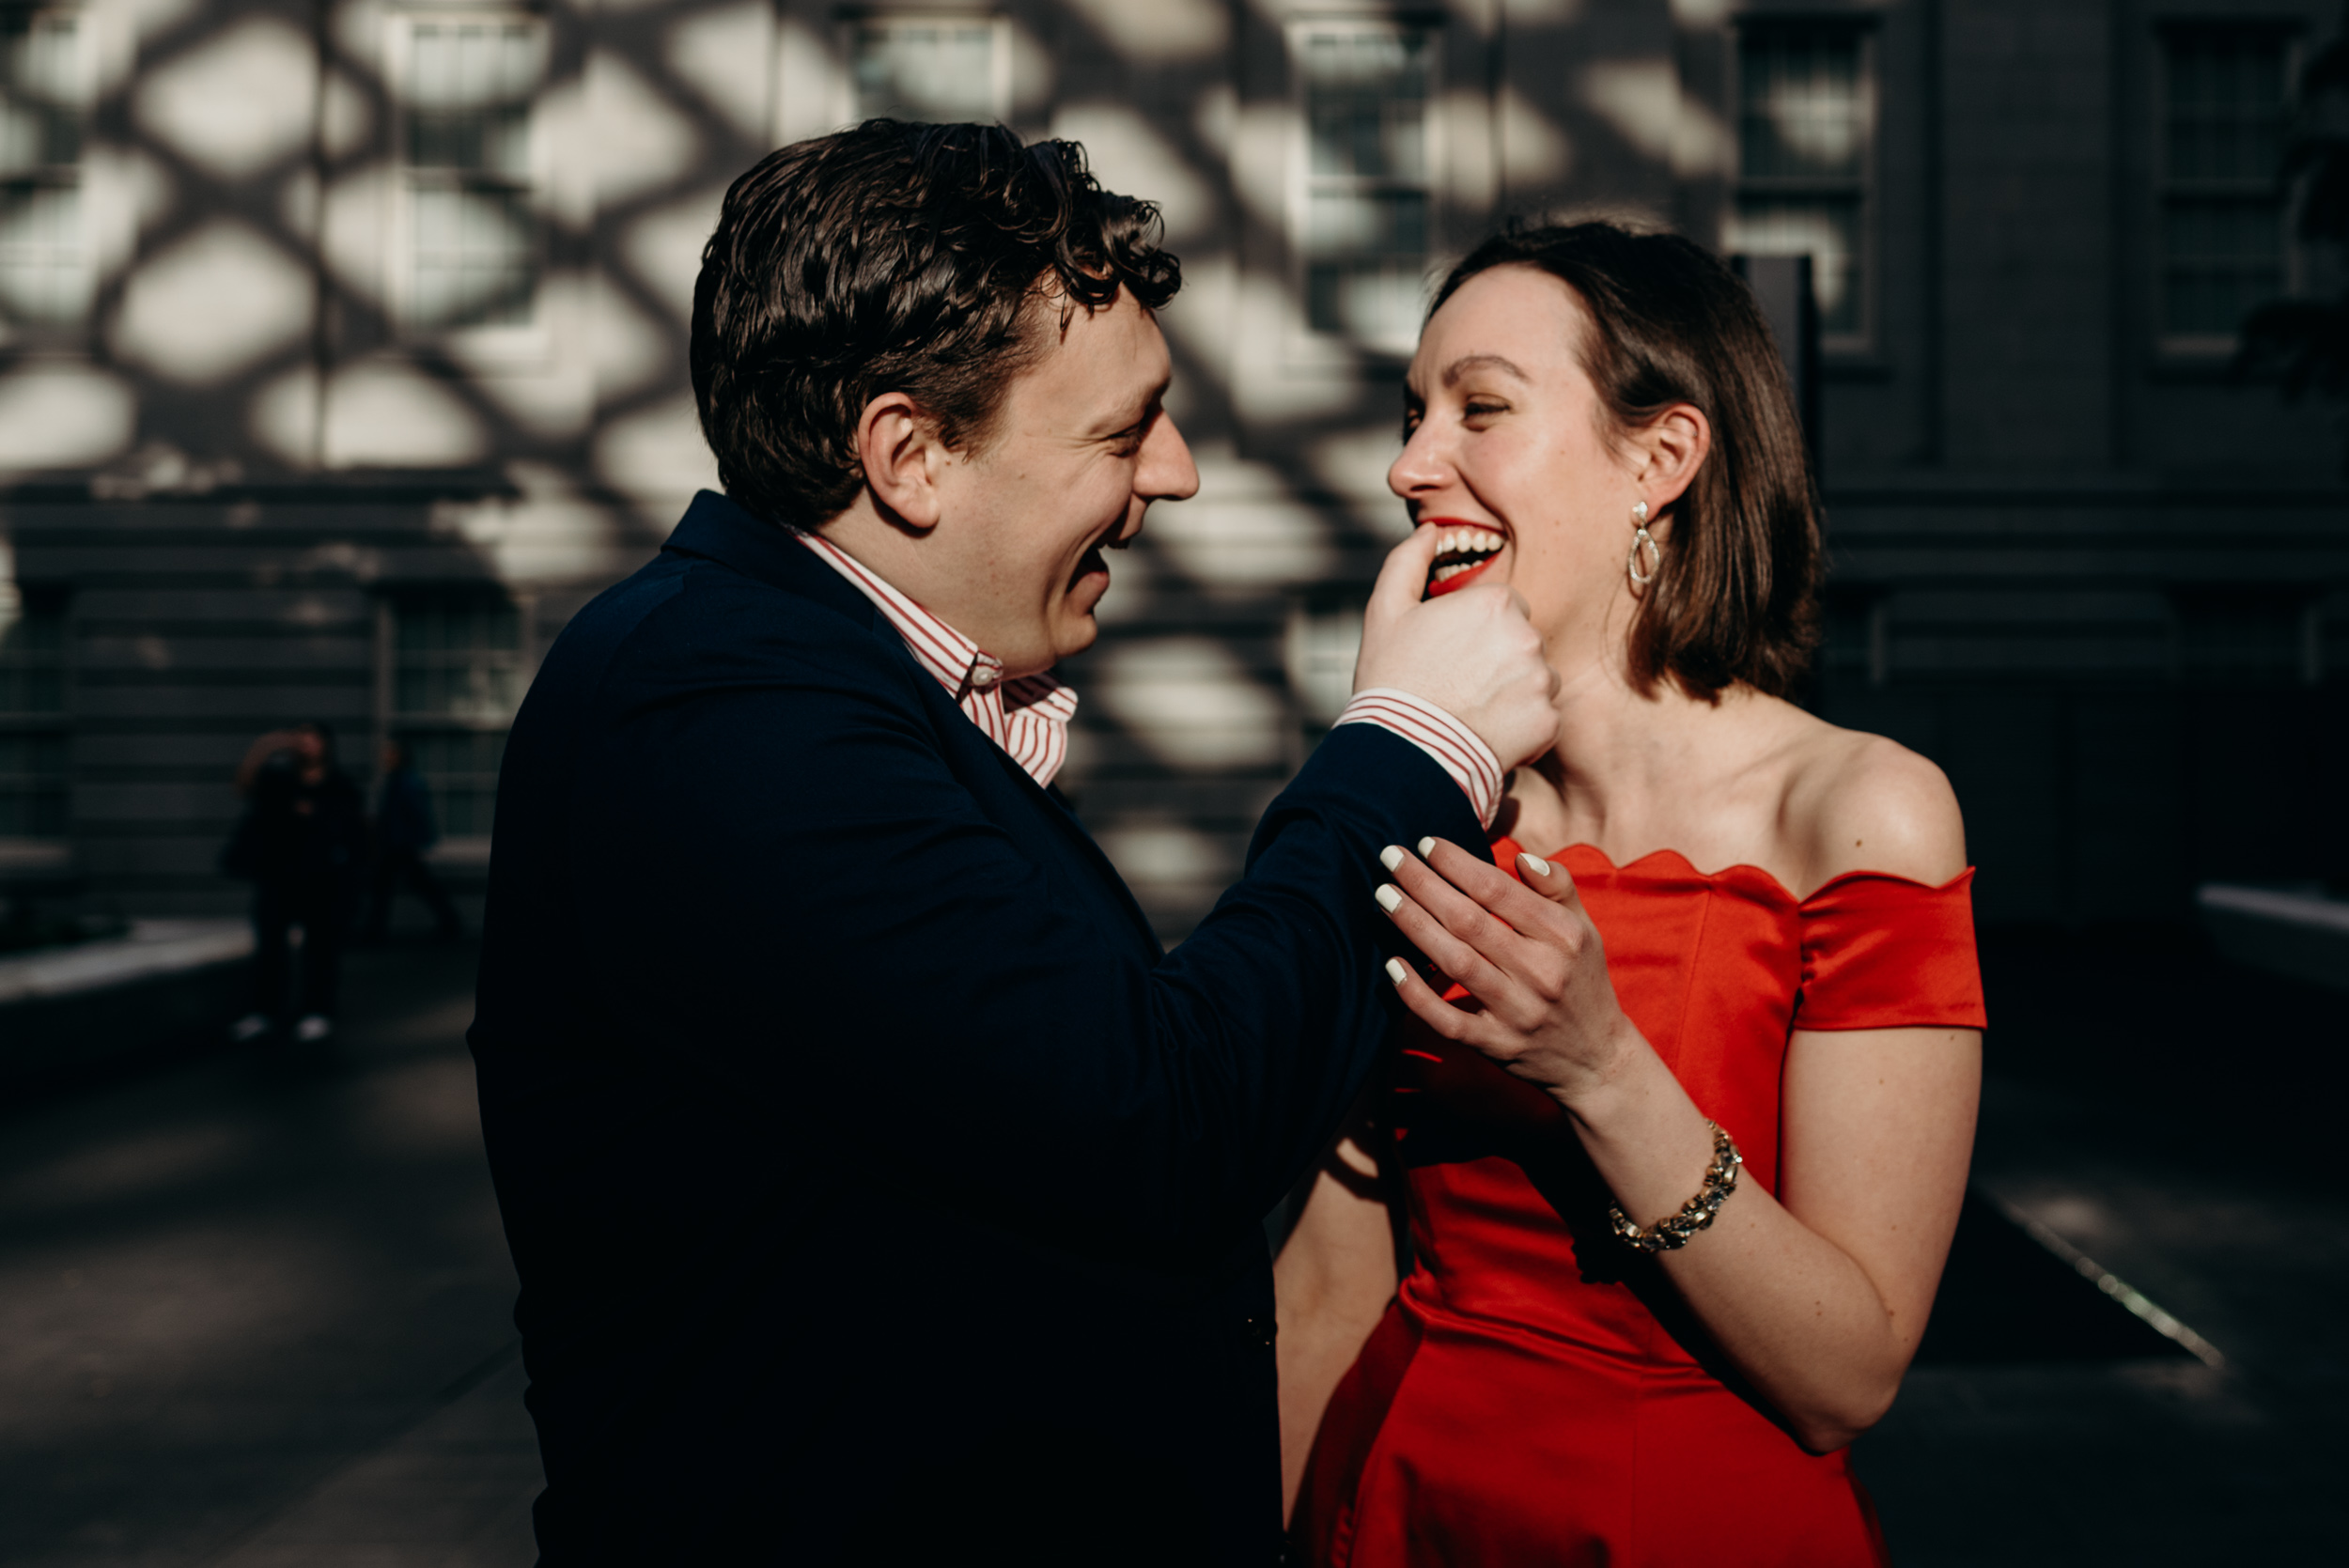 NATIONAL PORTRAIT GALLERY ENGAGEMENT PHOTO MEGAN GRAHAM PHOTOGRAPHY-3347.jpg